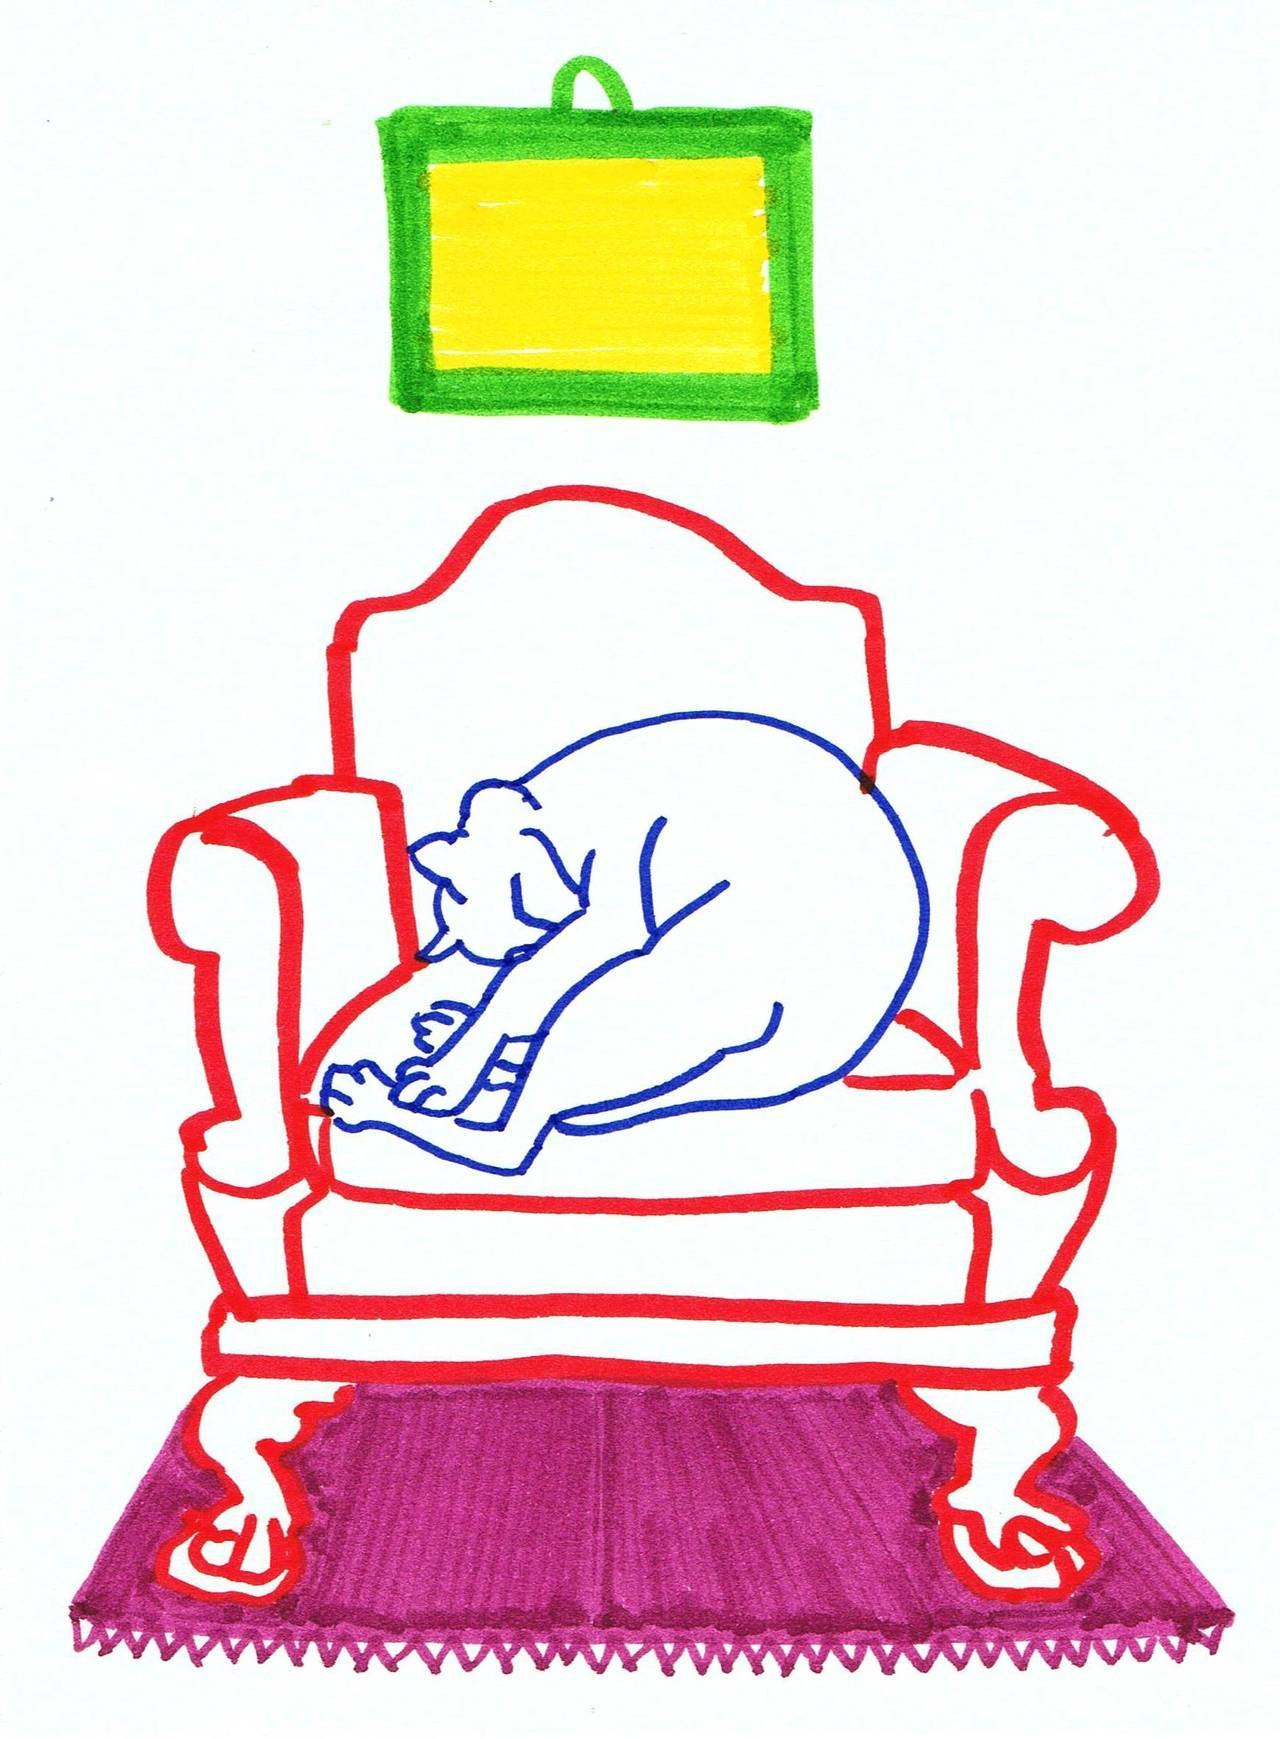 sleepy cat & chair (II.)